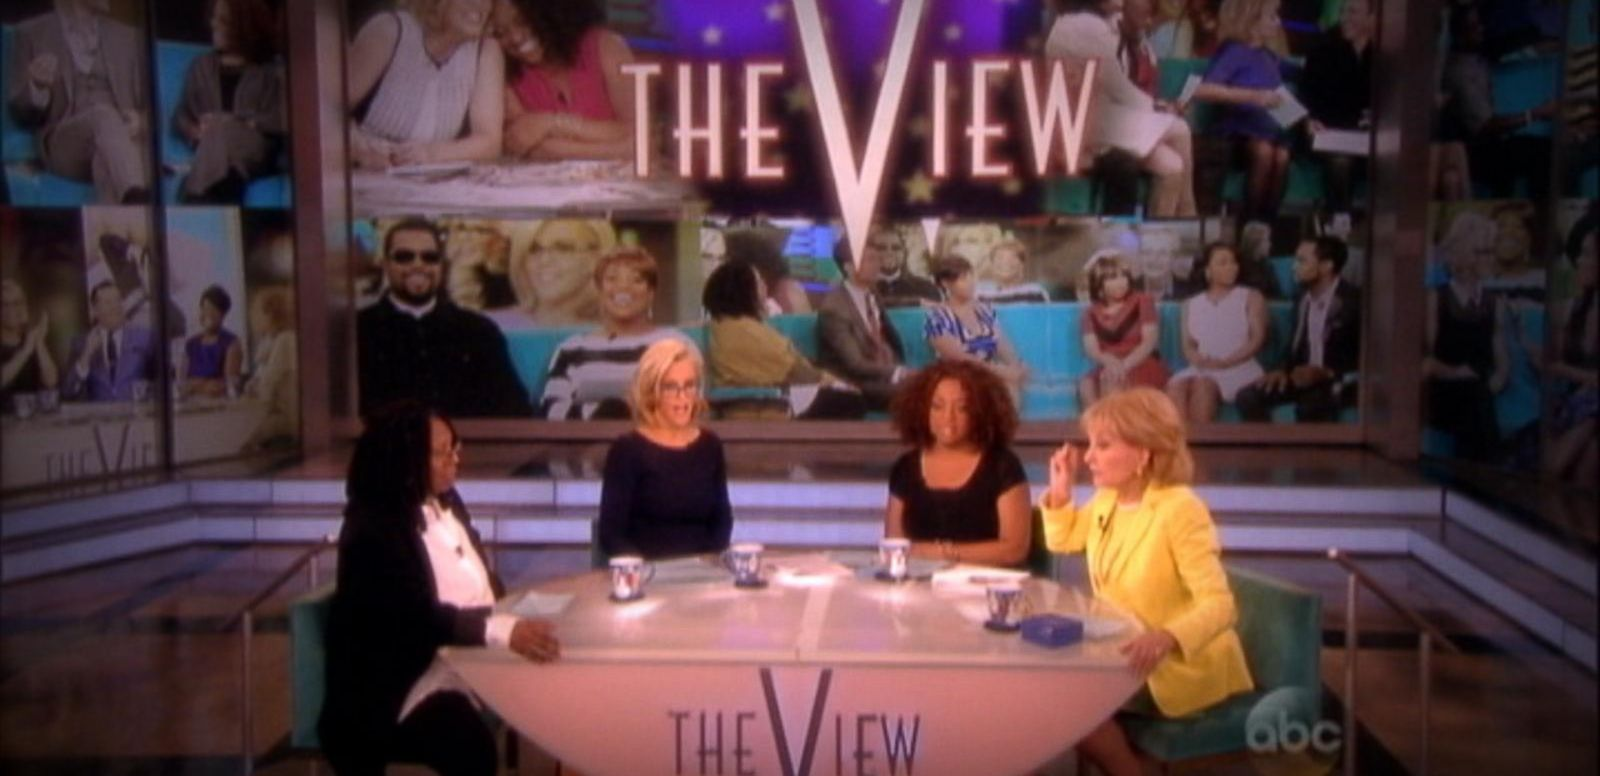 VIDEO: 'The View' Celebrates Its 4,000th Episode